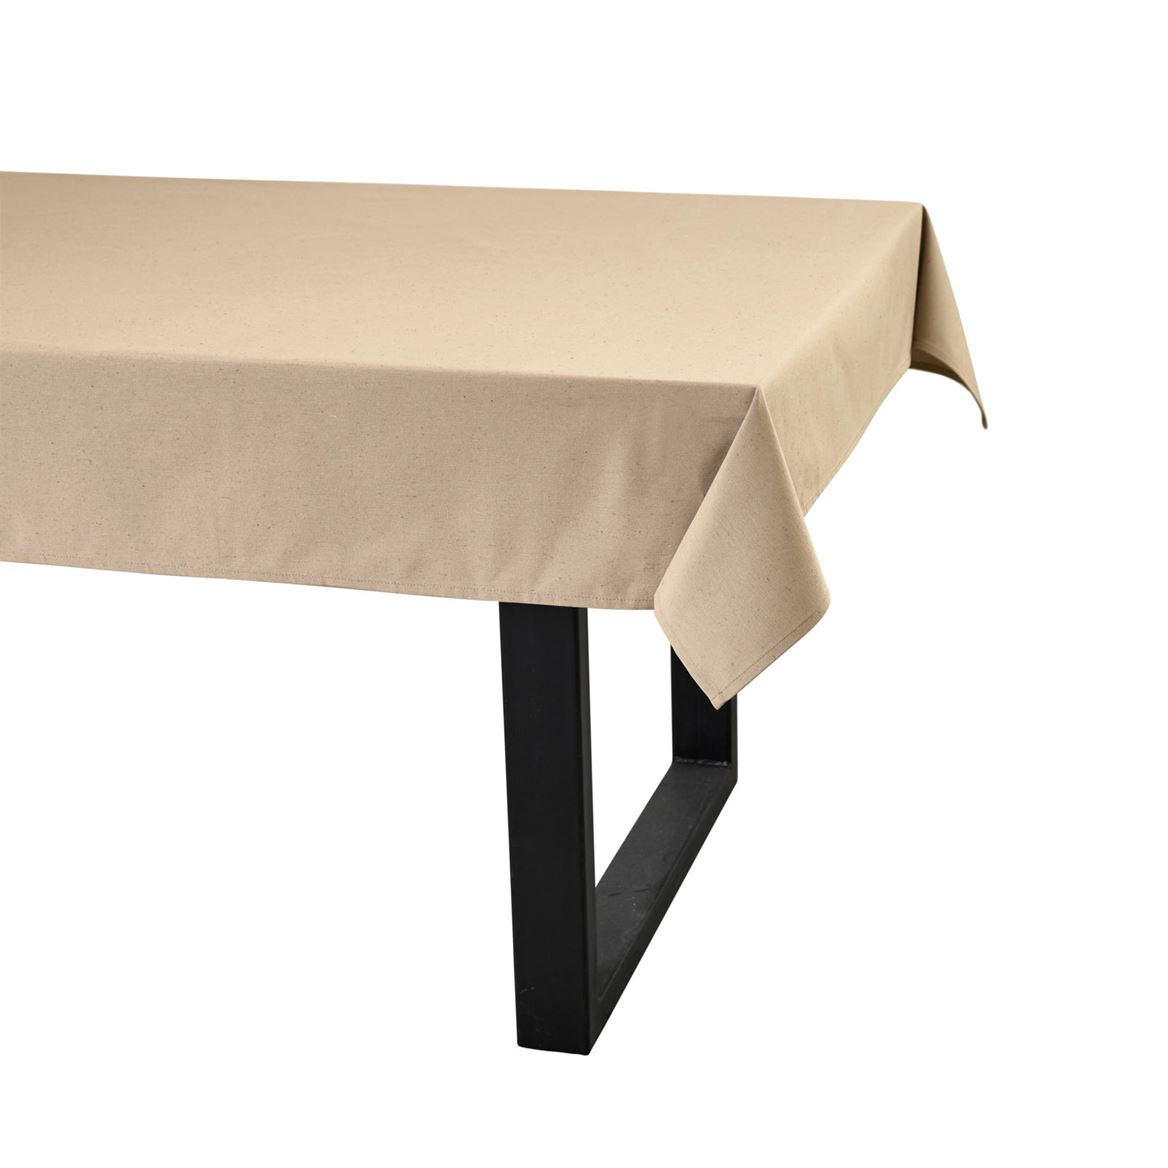 RECYCLE Toalha de mesa taupe W 138 x L 250 cm_recycle-toalha-de-mesa-taupe-w-138-x-l-250-cm